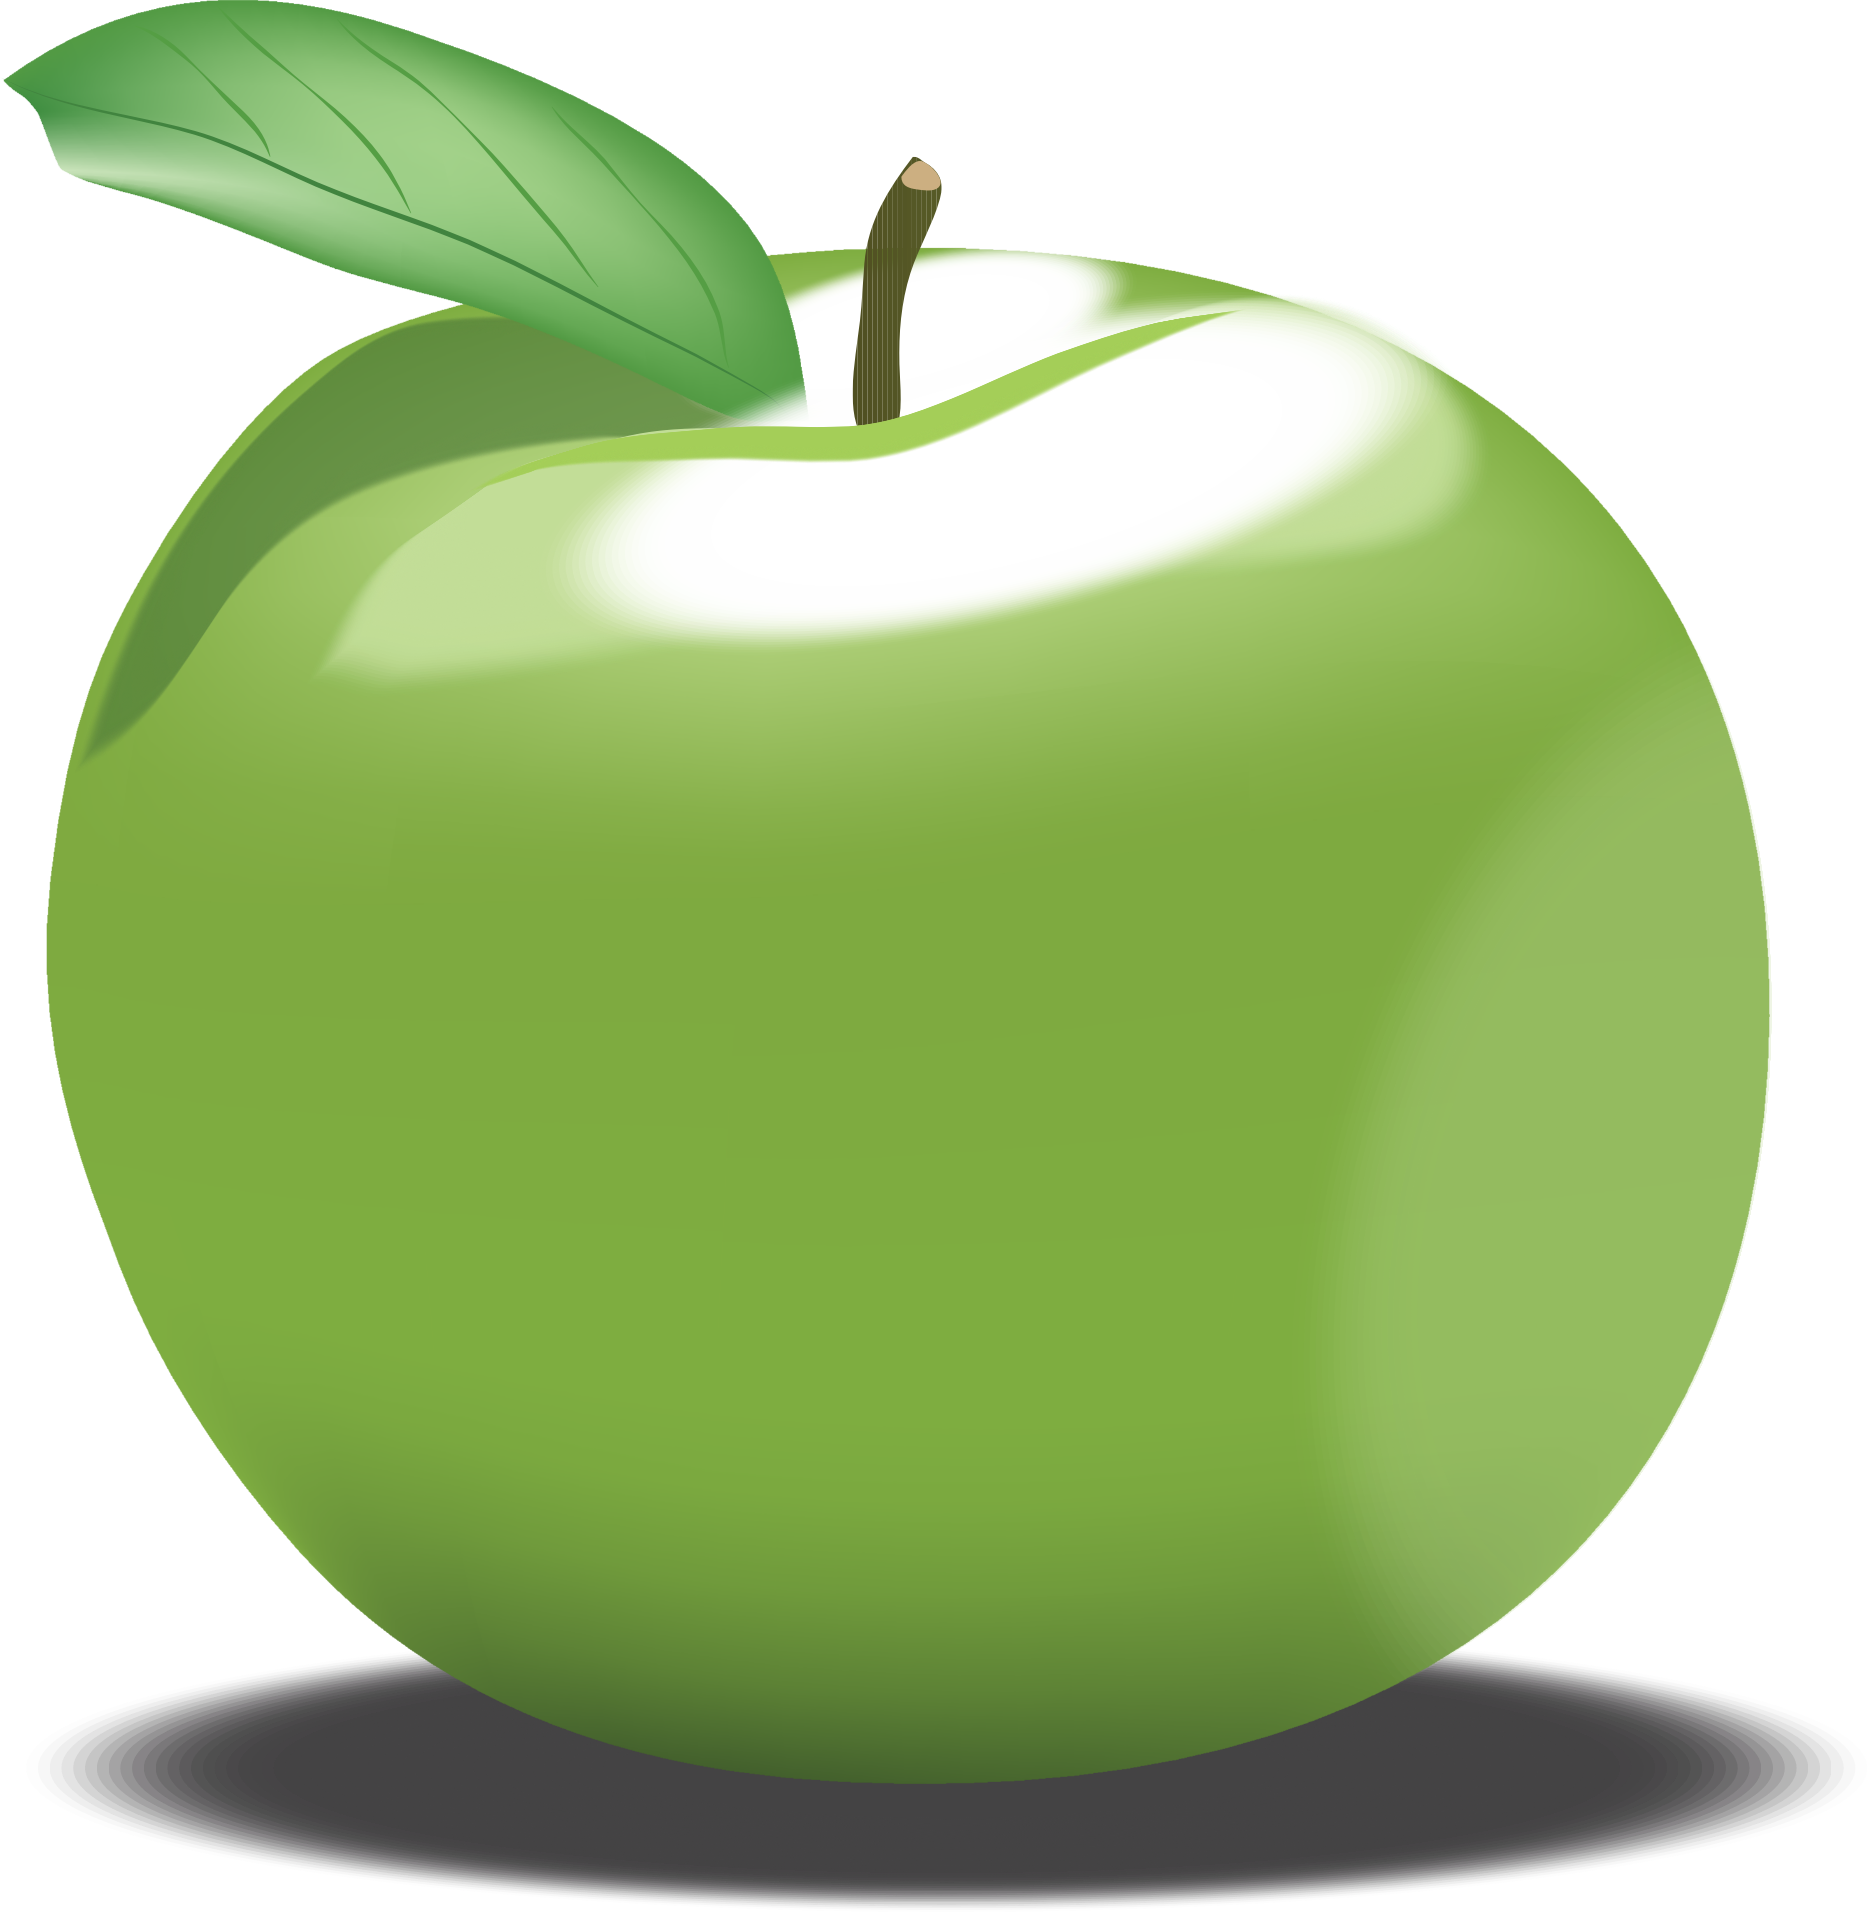 clipart green apple rh openclipart org green apple pictures clip art Yellow Apple Clip Art